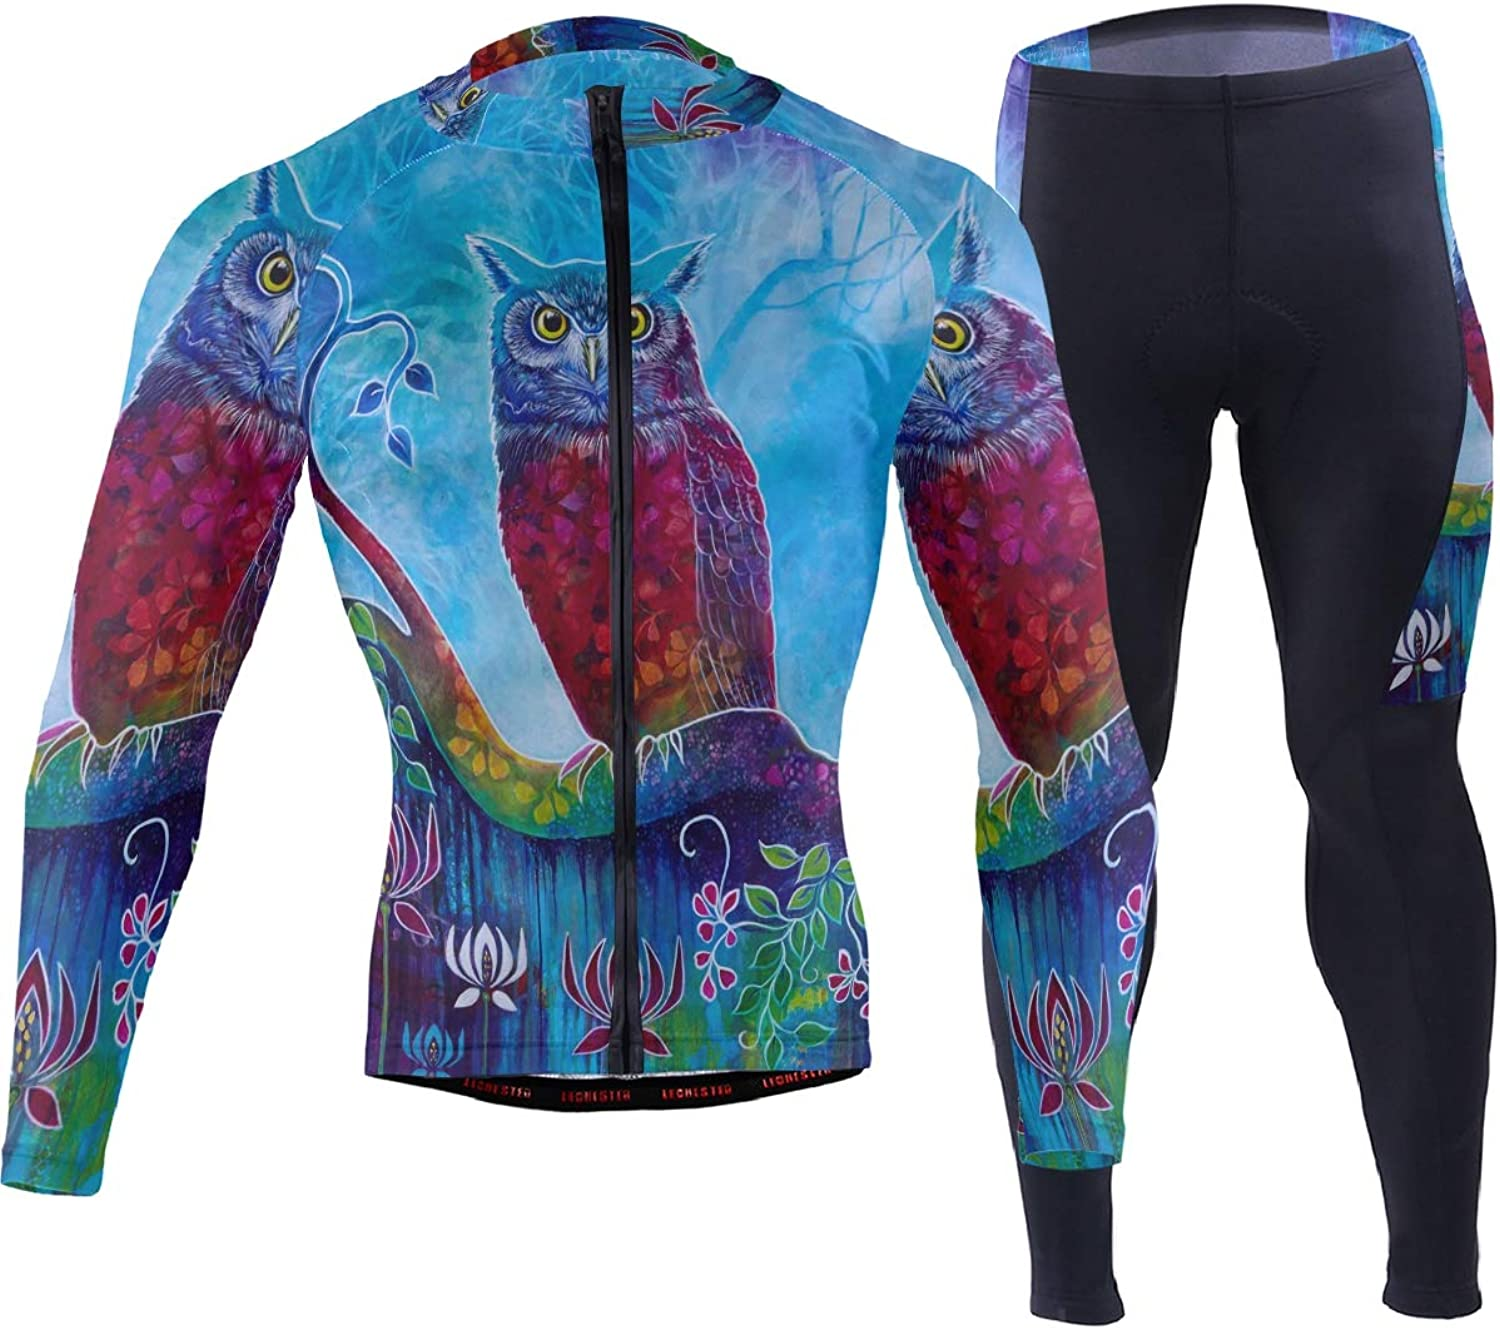 FAJRO Art Night Owl Painting Sportswear Suit Bike Outfit Set Breathable Quick Dry 3D Padded Pants